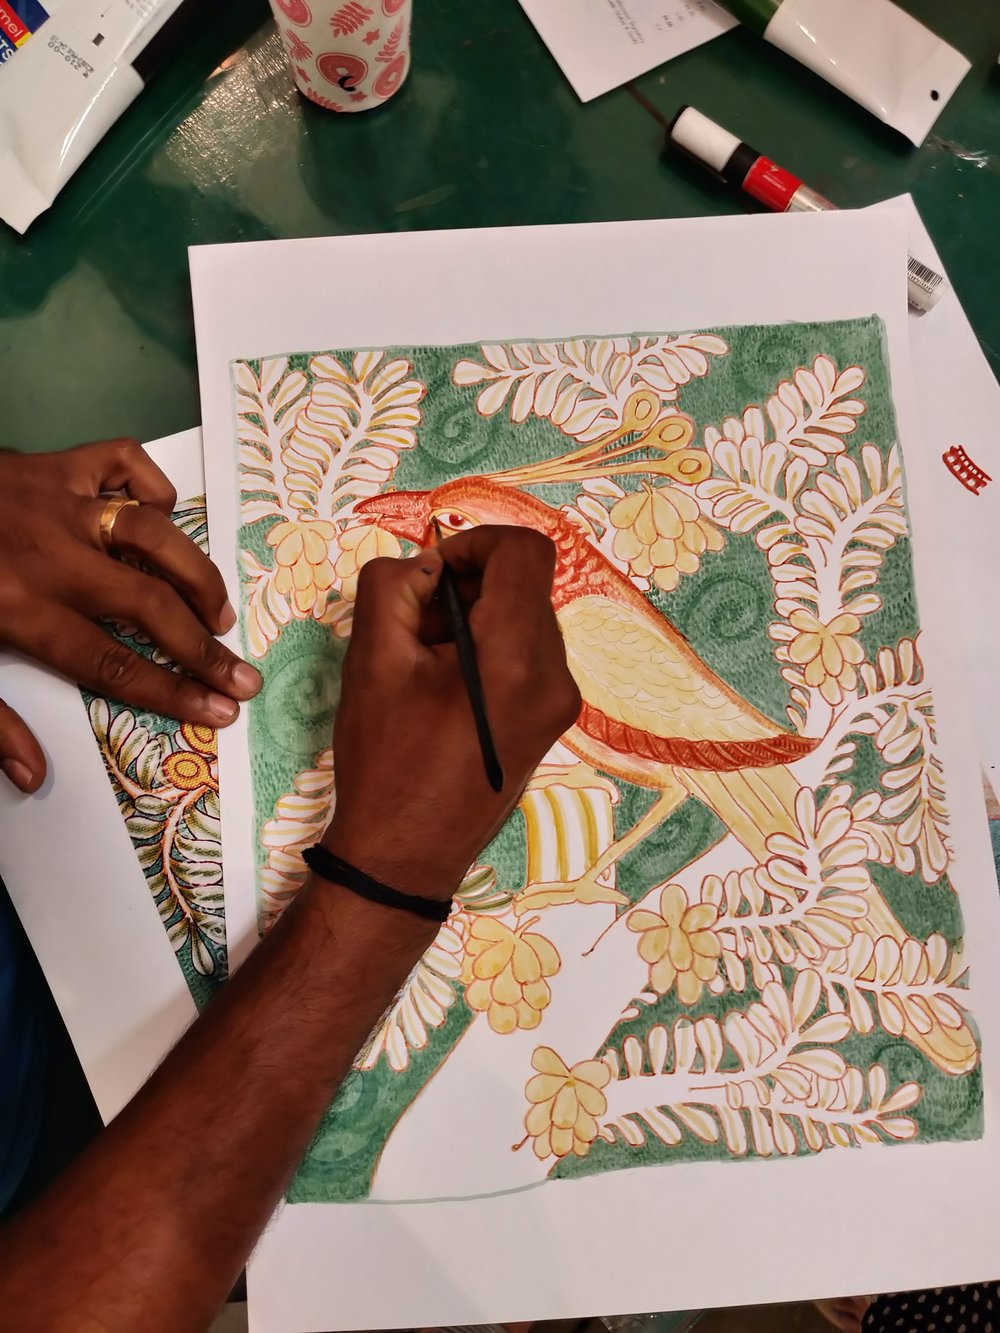 Under muralist and teacher Vishnu Vikraman's patient tutelage, everyone was able to pick up pace quickly, learning to outline and use the spell-binding stippling technique used in the Kerala mural.  This was the second Mural Painting workshop held by the Kerala Museum, the first being Sacred Worlds in 2017.